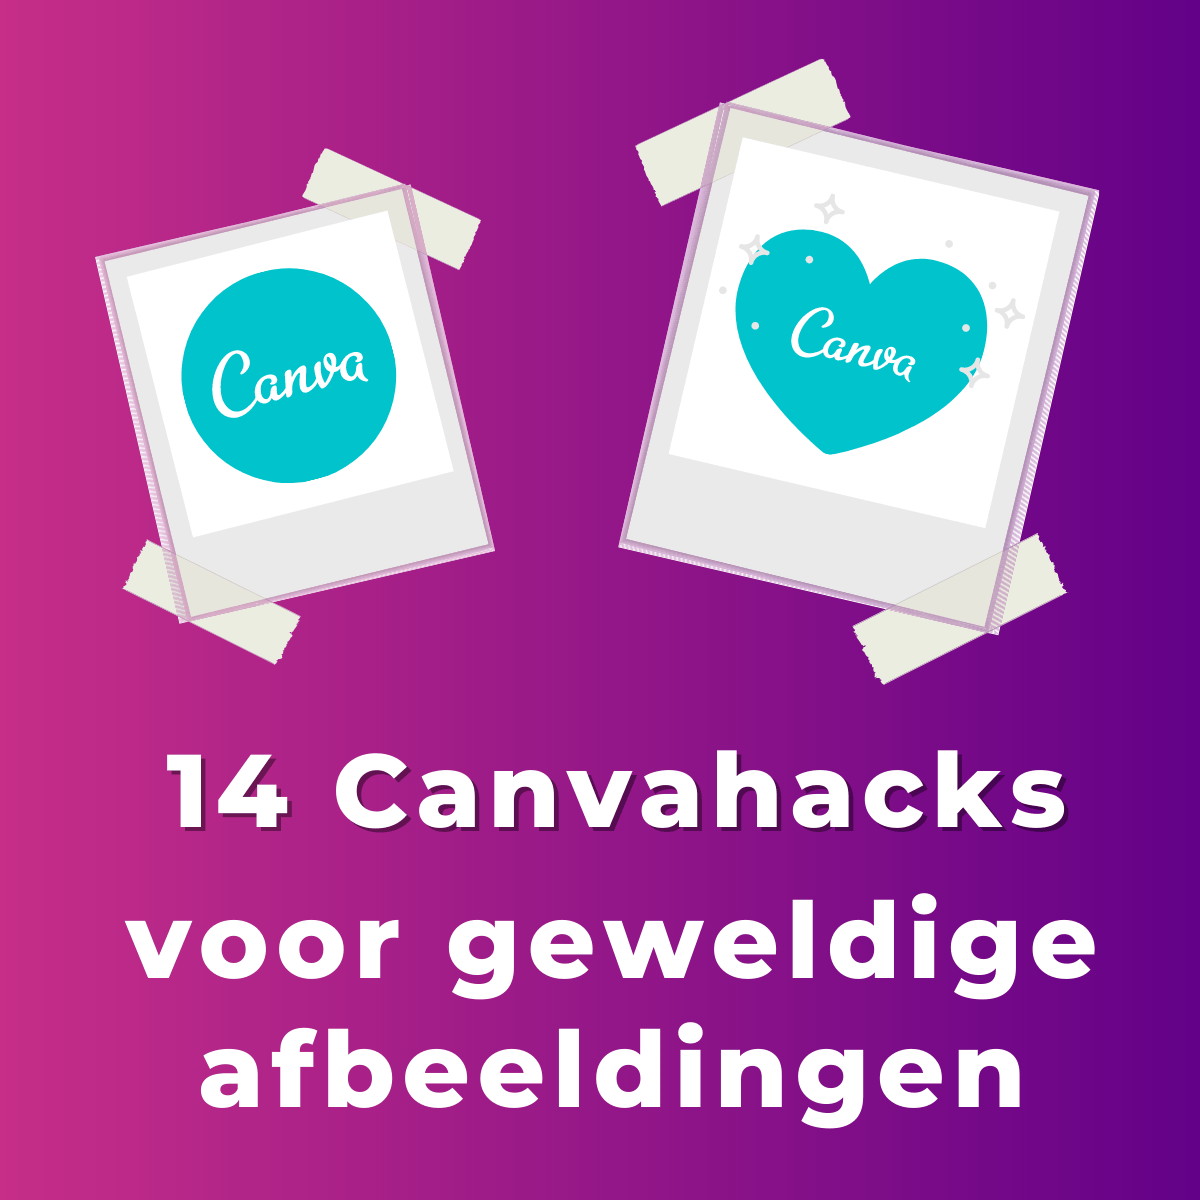 14 Canvahacks